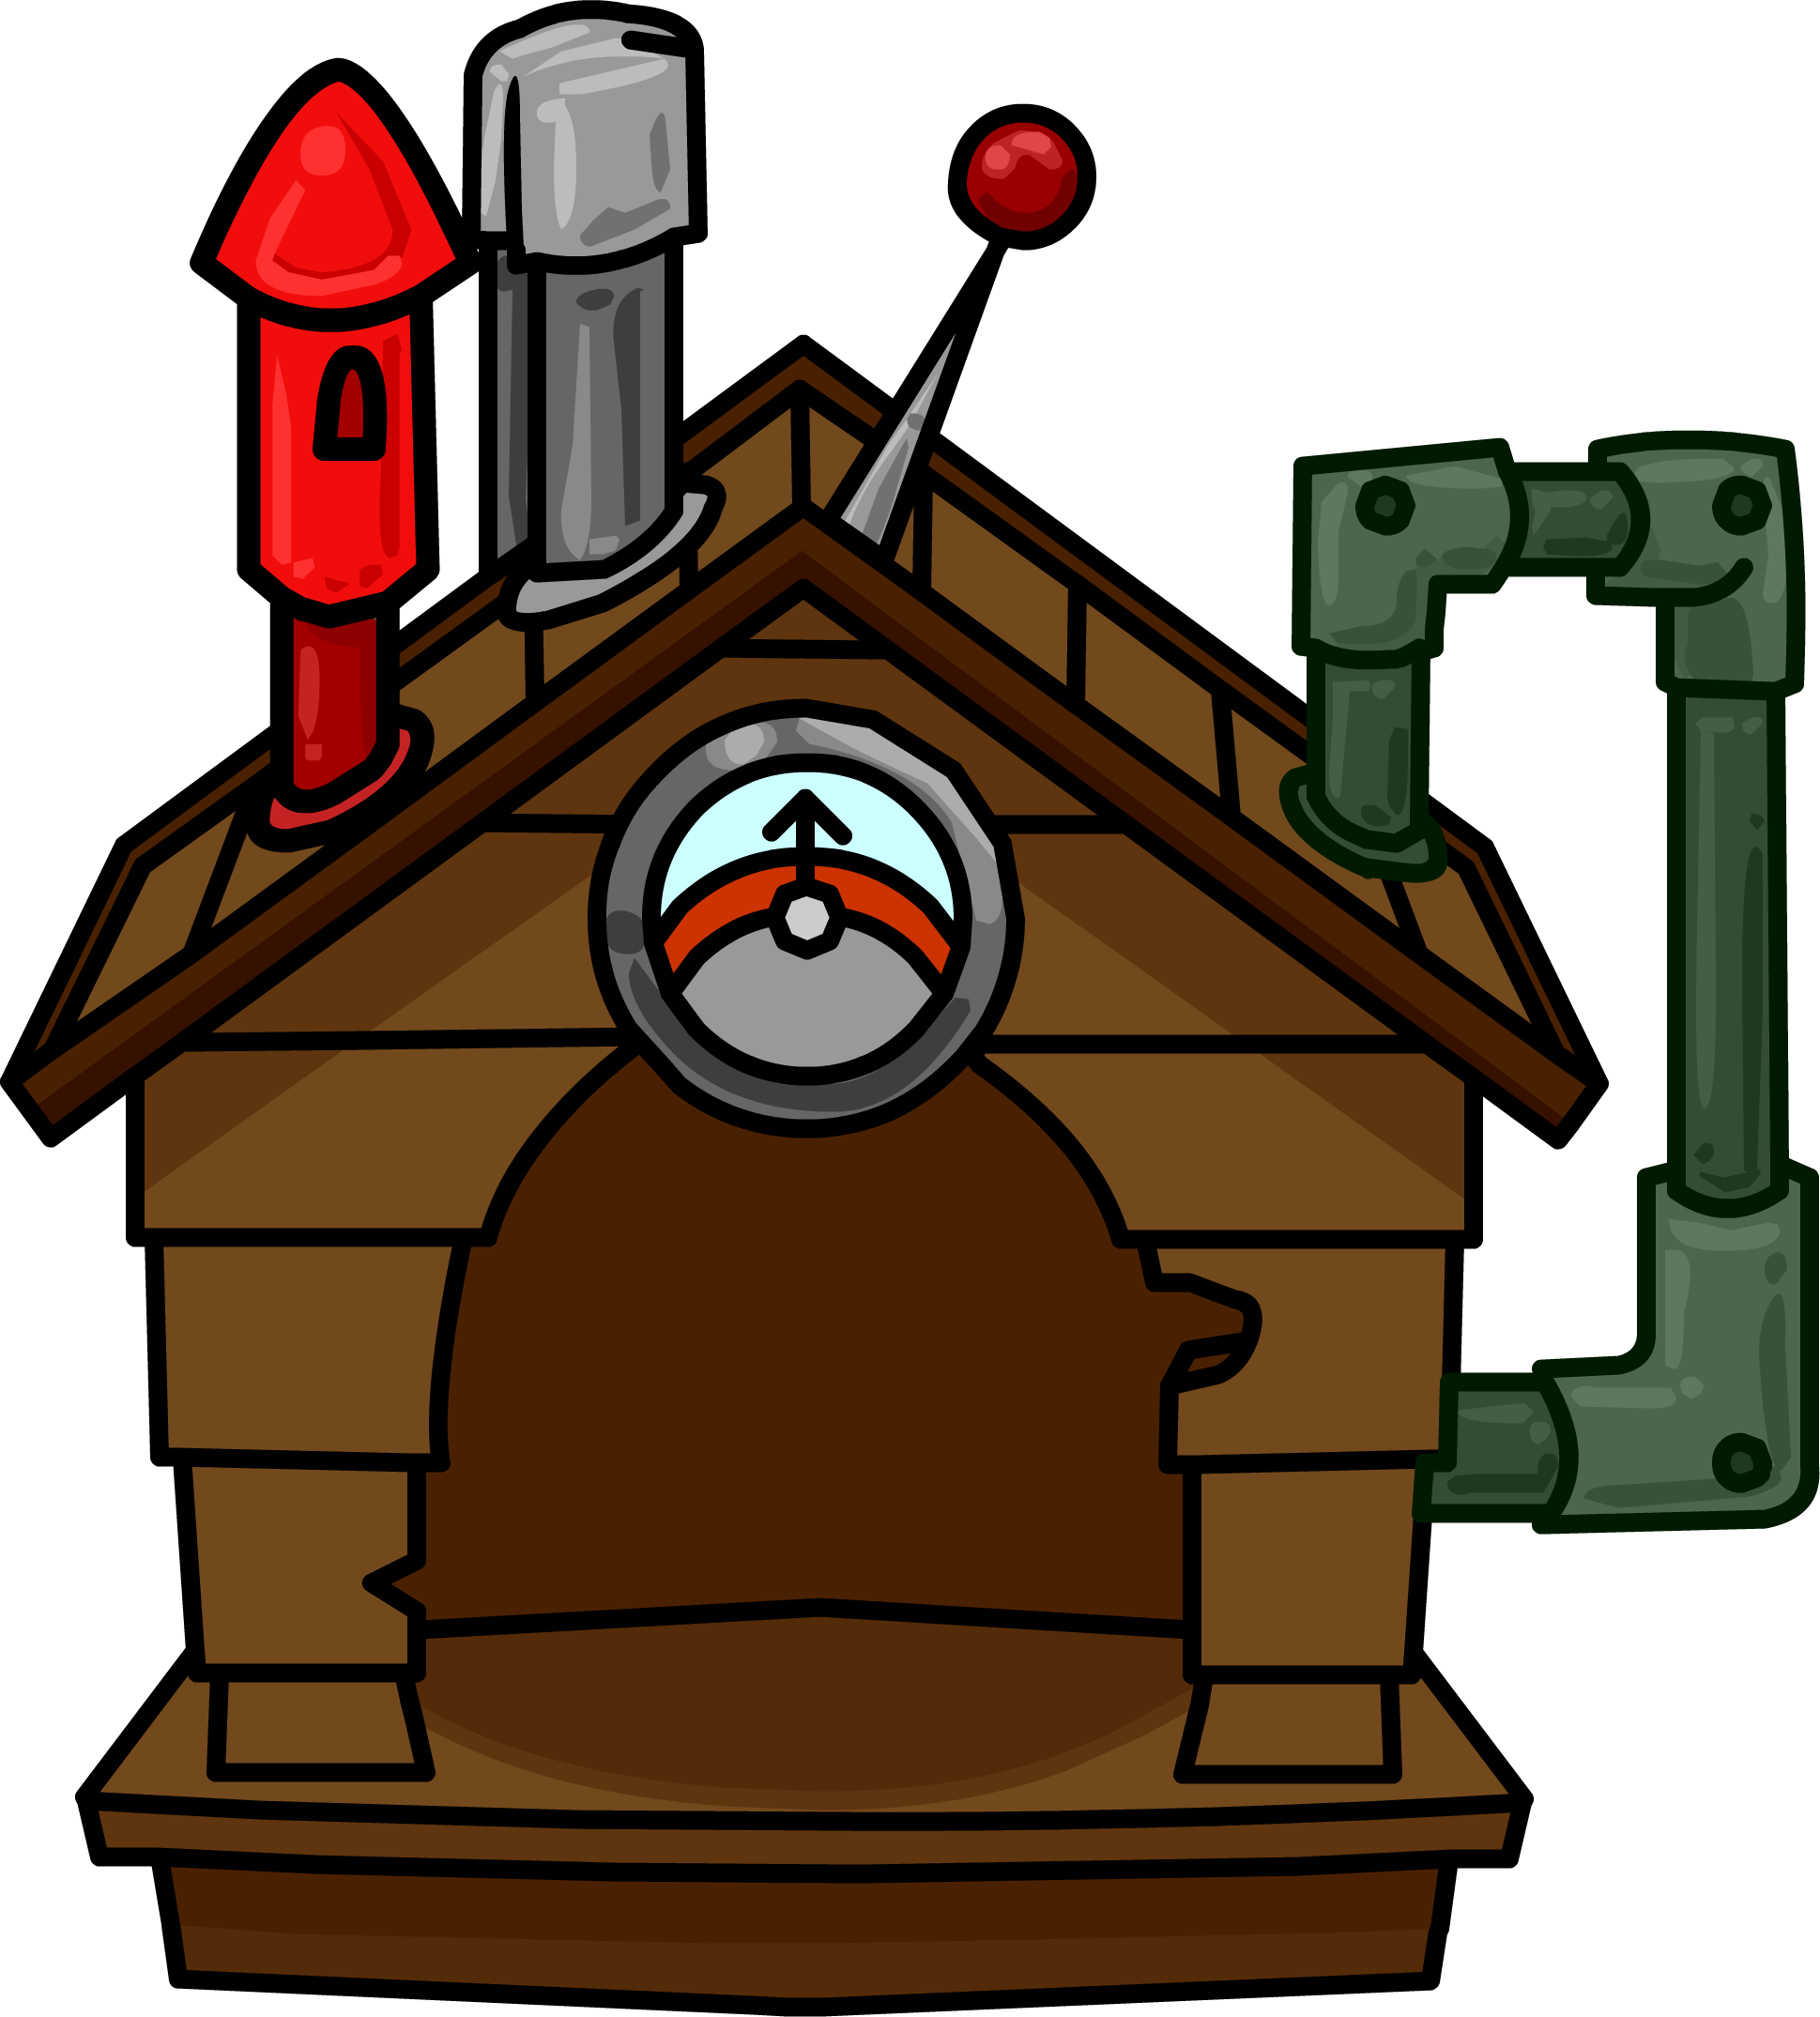 Wilderness expedition club penguin. Cliff clipart cove